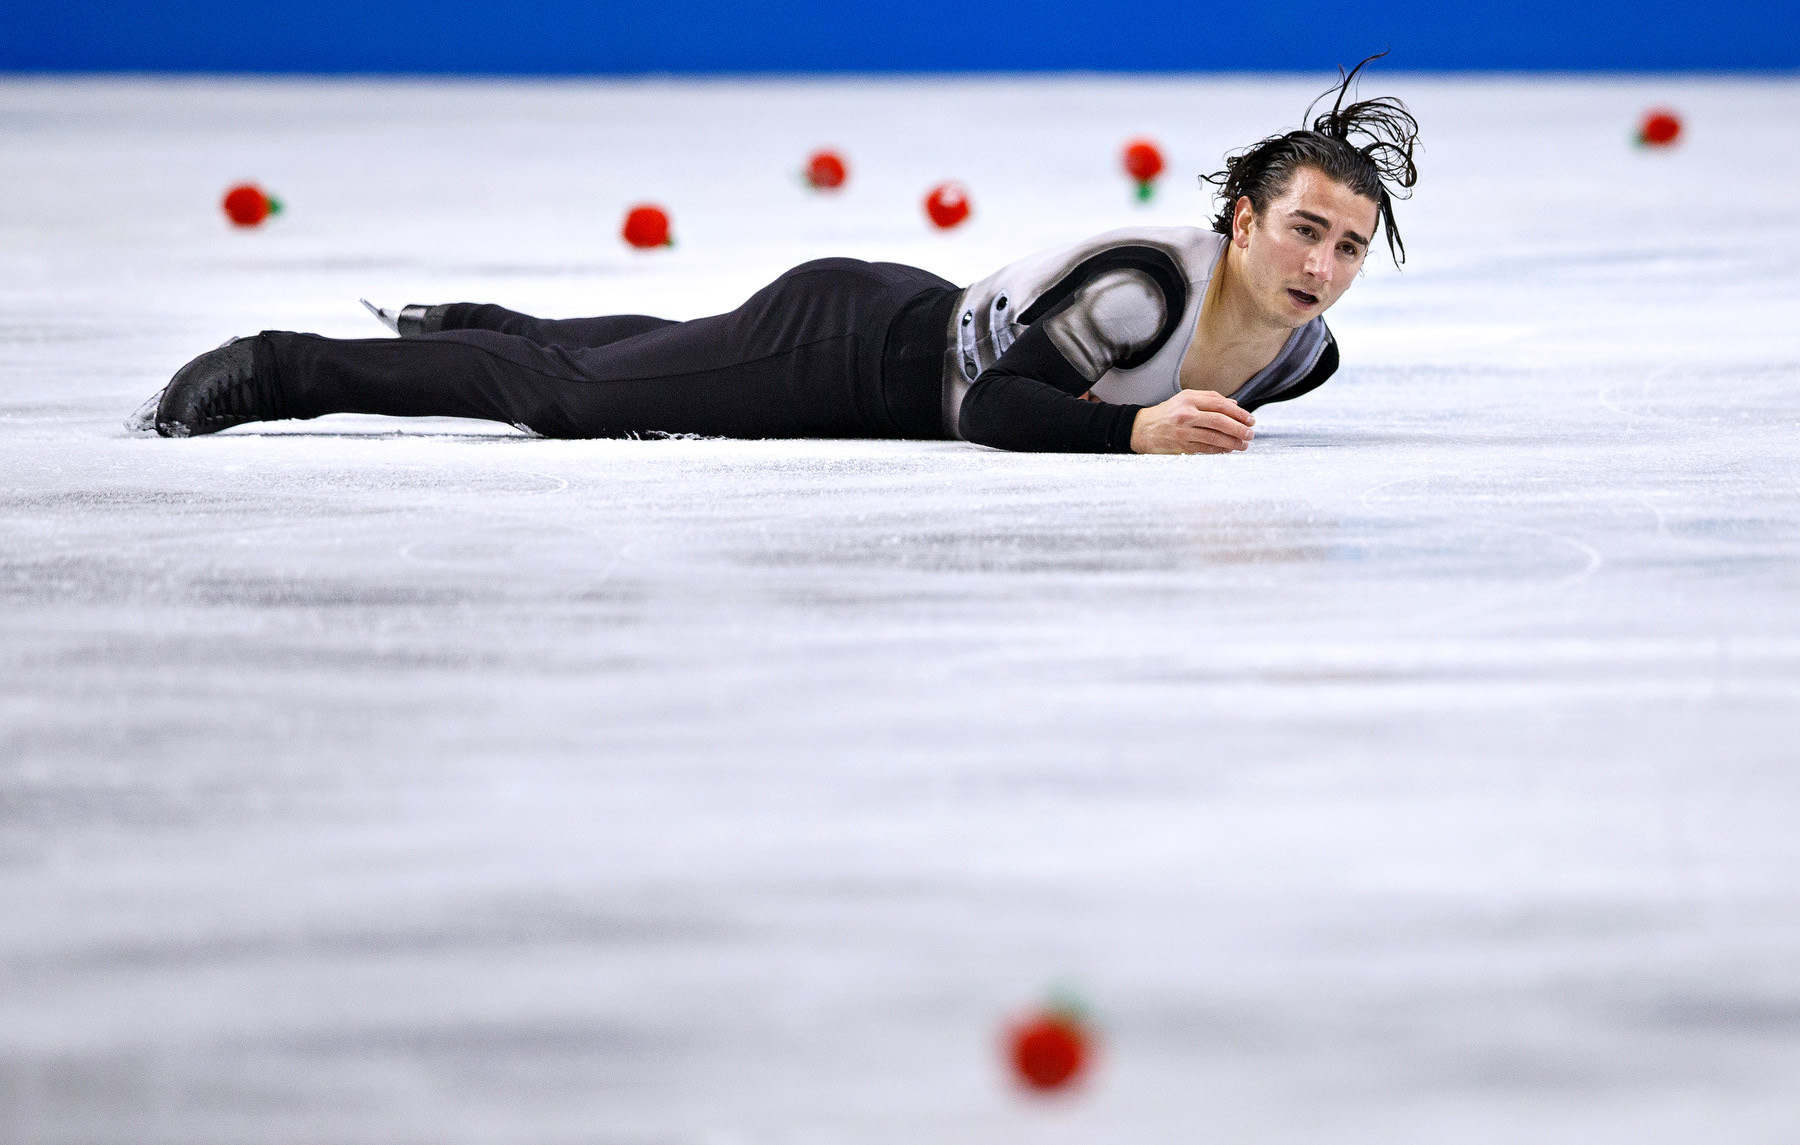 Third Place | Multiple PhotosJerry Wolford, News & RecordMax Aaron ends his performance by sliding across the ice in the Men\'s Free Skate during the U.S. Figure Skating Championships, Sunday, January 25, 2015, at the Greensboro Coliseum.